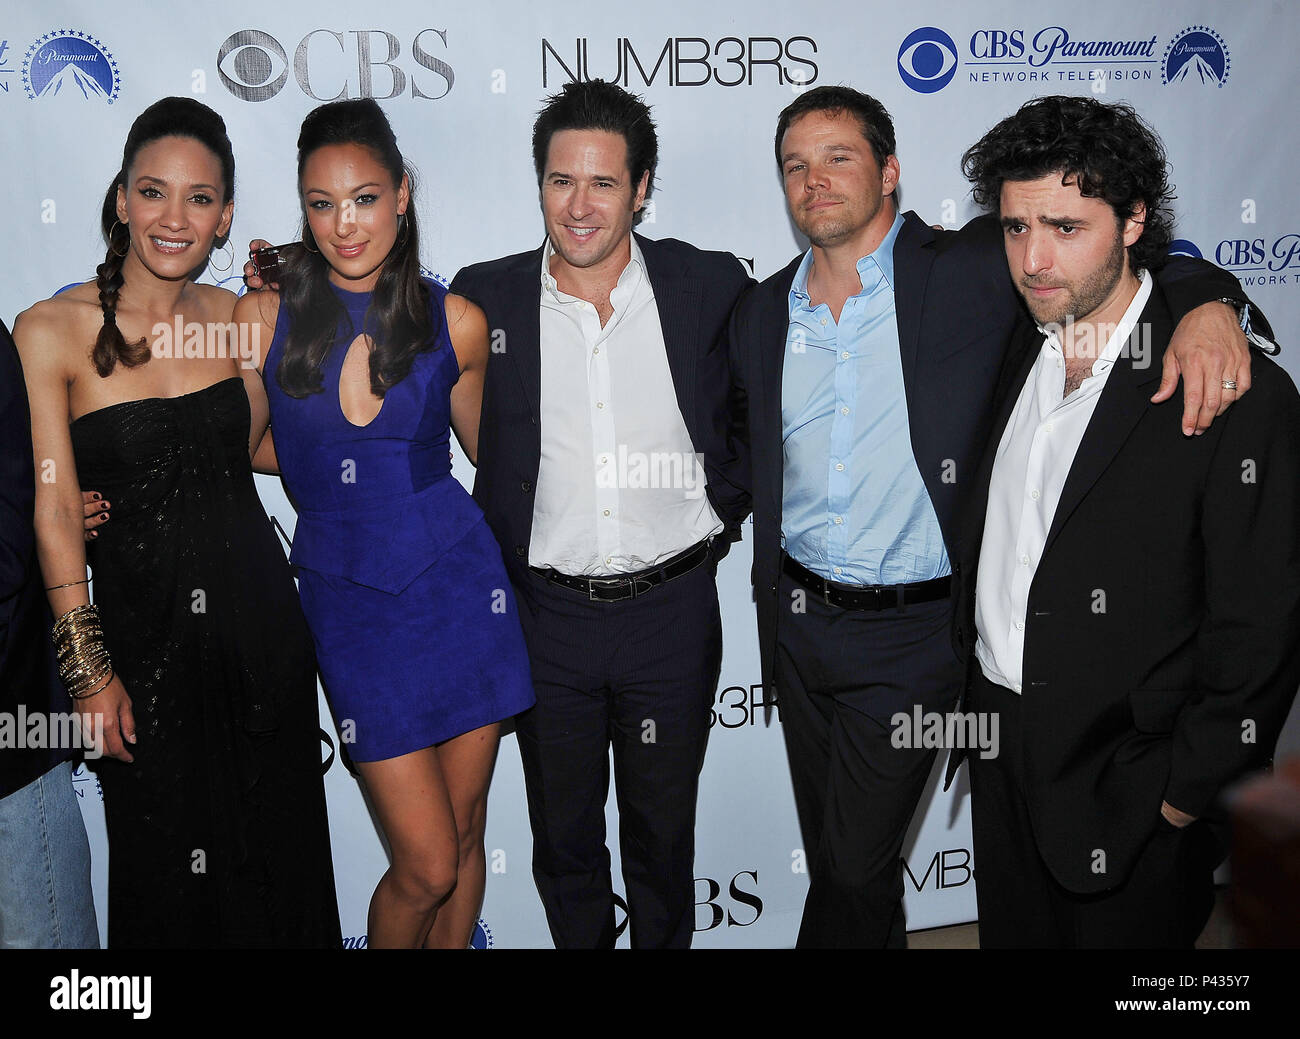 Sophina brown aya sumika rob morrow dylan bruno and david sophina brown aya sumika rob morrow dylan bruno and david krumholtz numb3rs cast meet the press at the sunset tower hotel in los angeles m4hsunfo